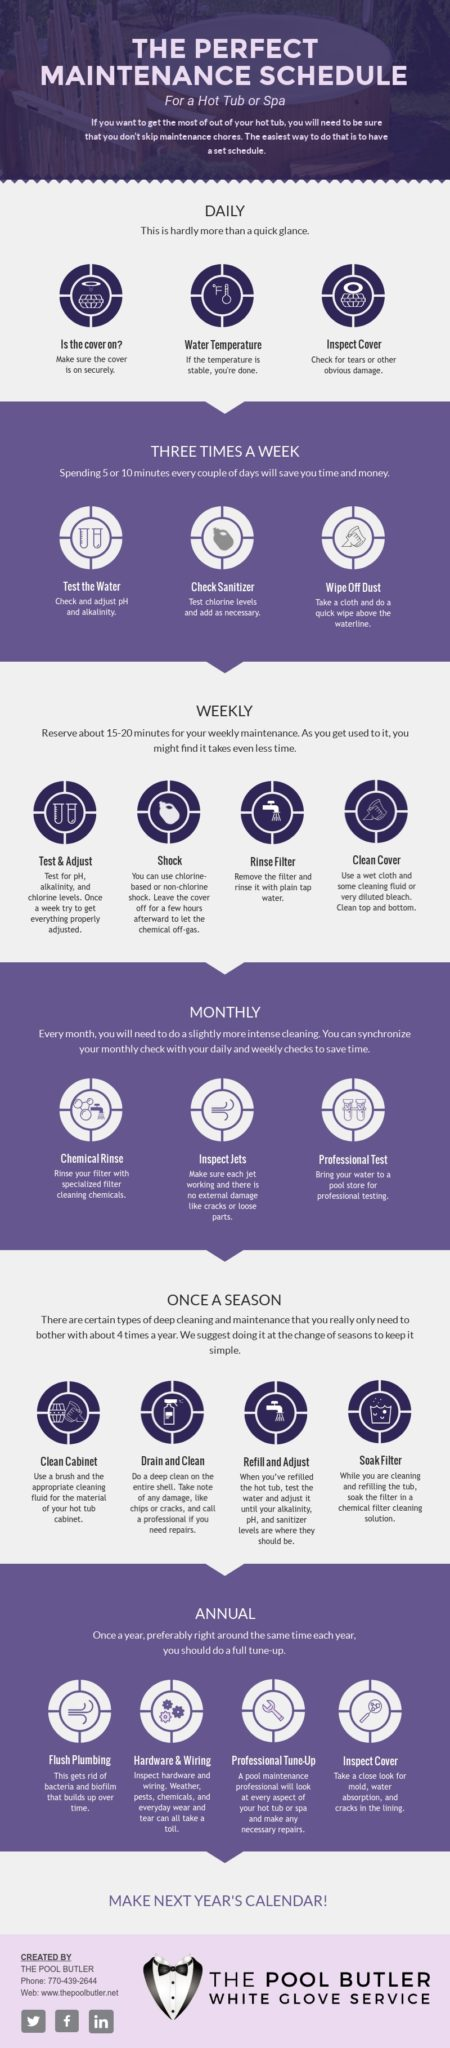 The Perfect Maintenance Schedule for a Hot Tub or Spa [infographic]